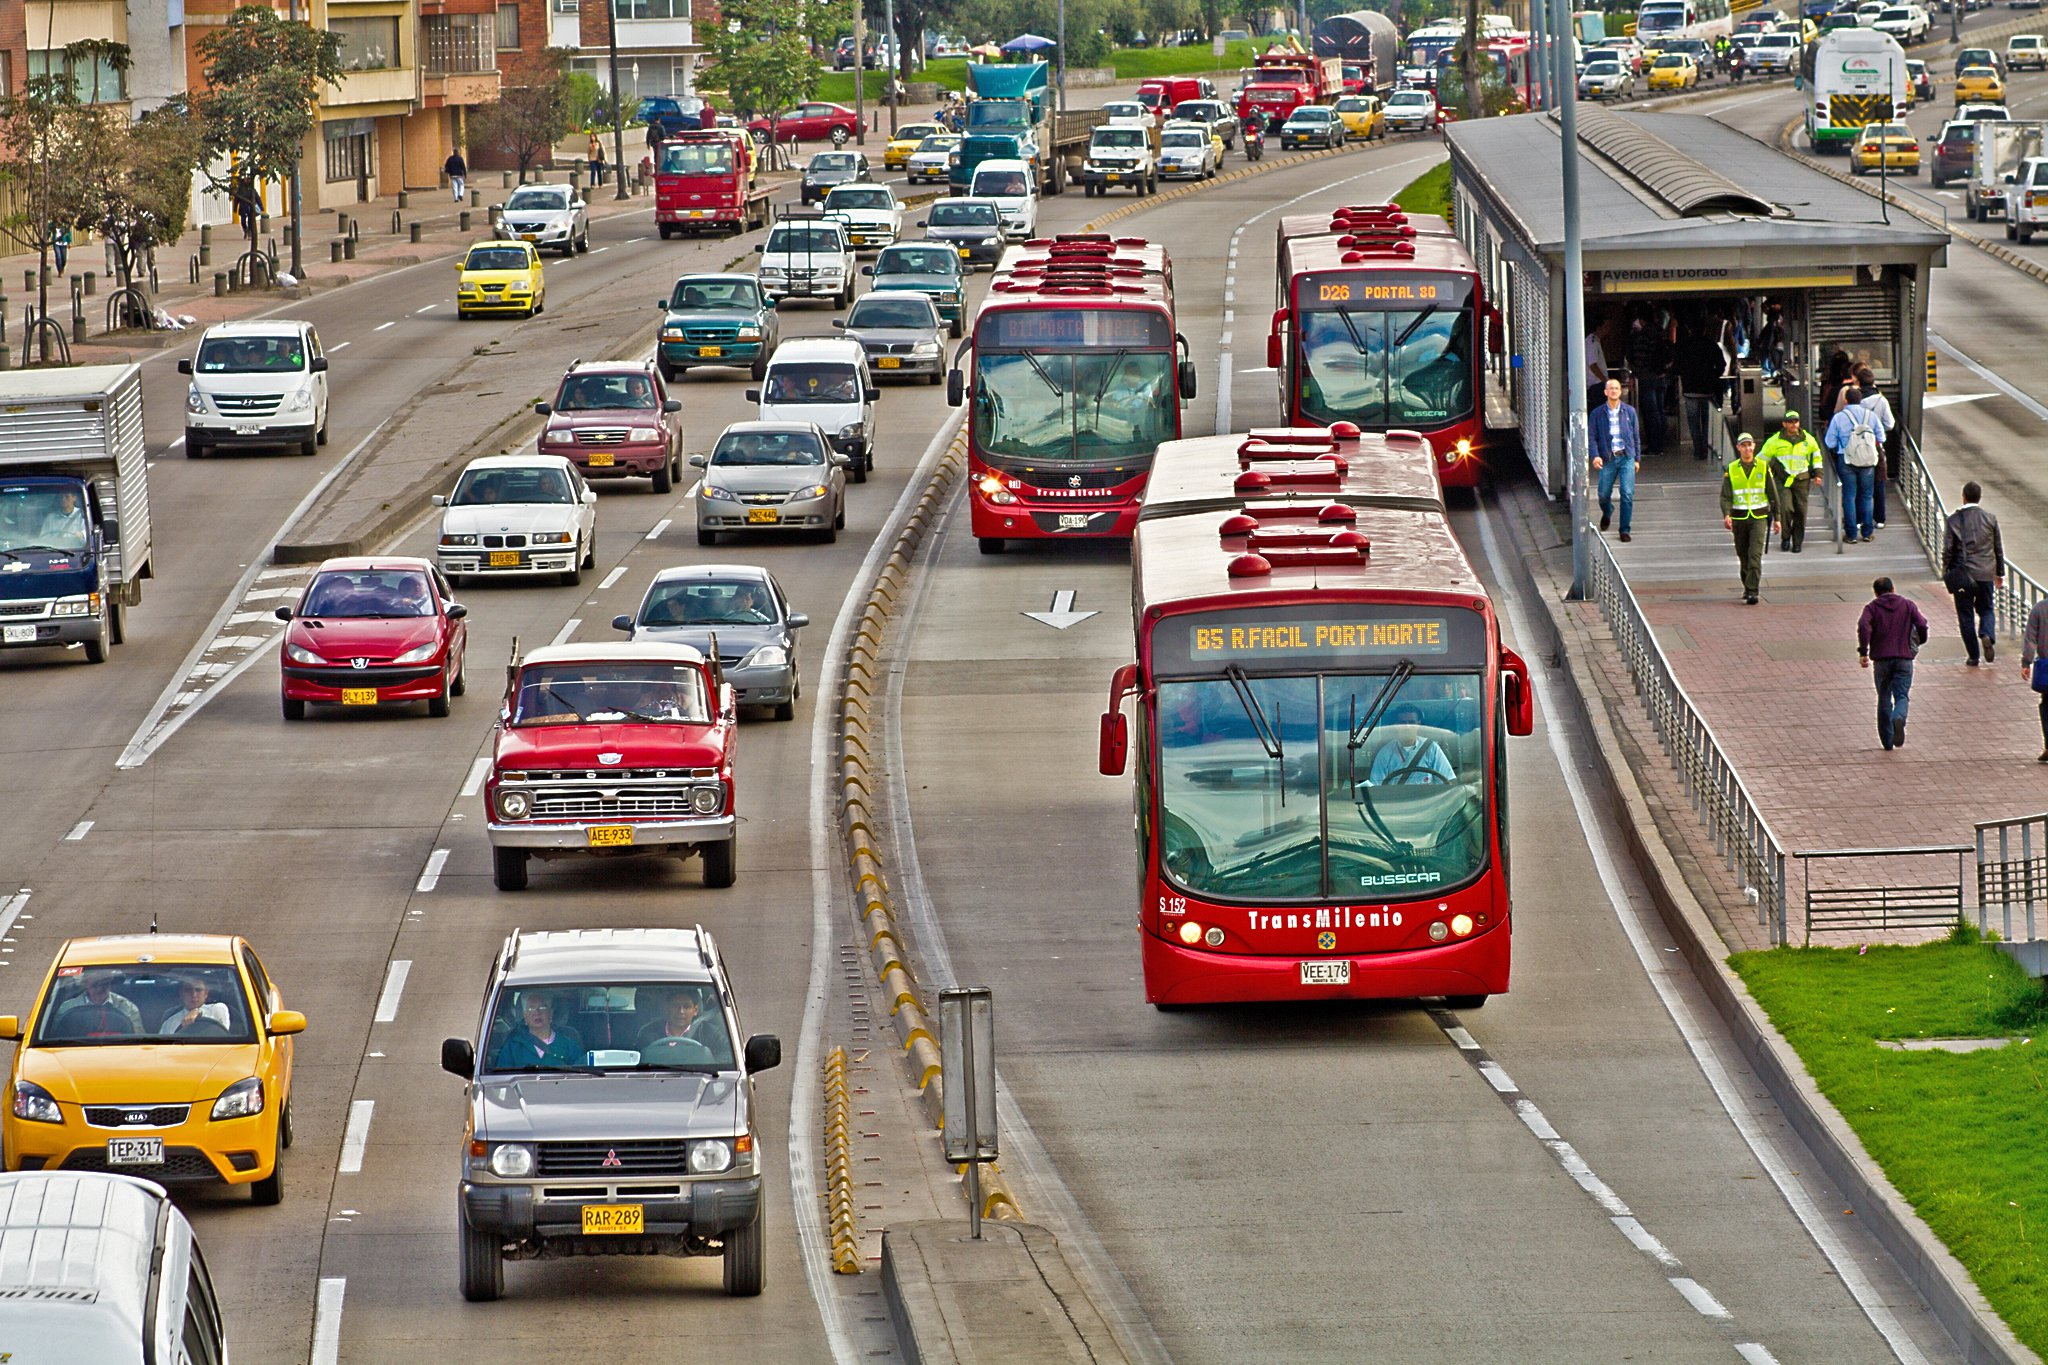 TransMilenio buses, part of Bogotá's bus rapid transit system, travel down lanes separated from regular motorised traffic. Photo: Claudio Olivares Medina